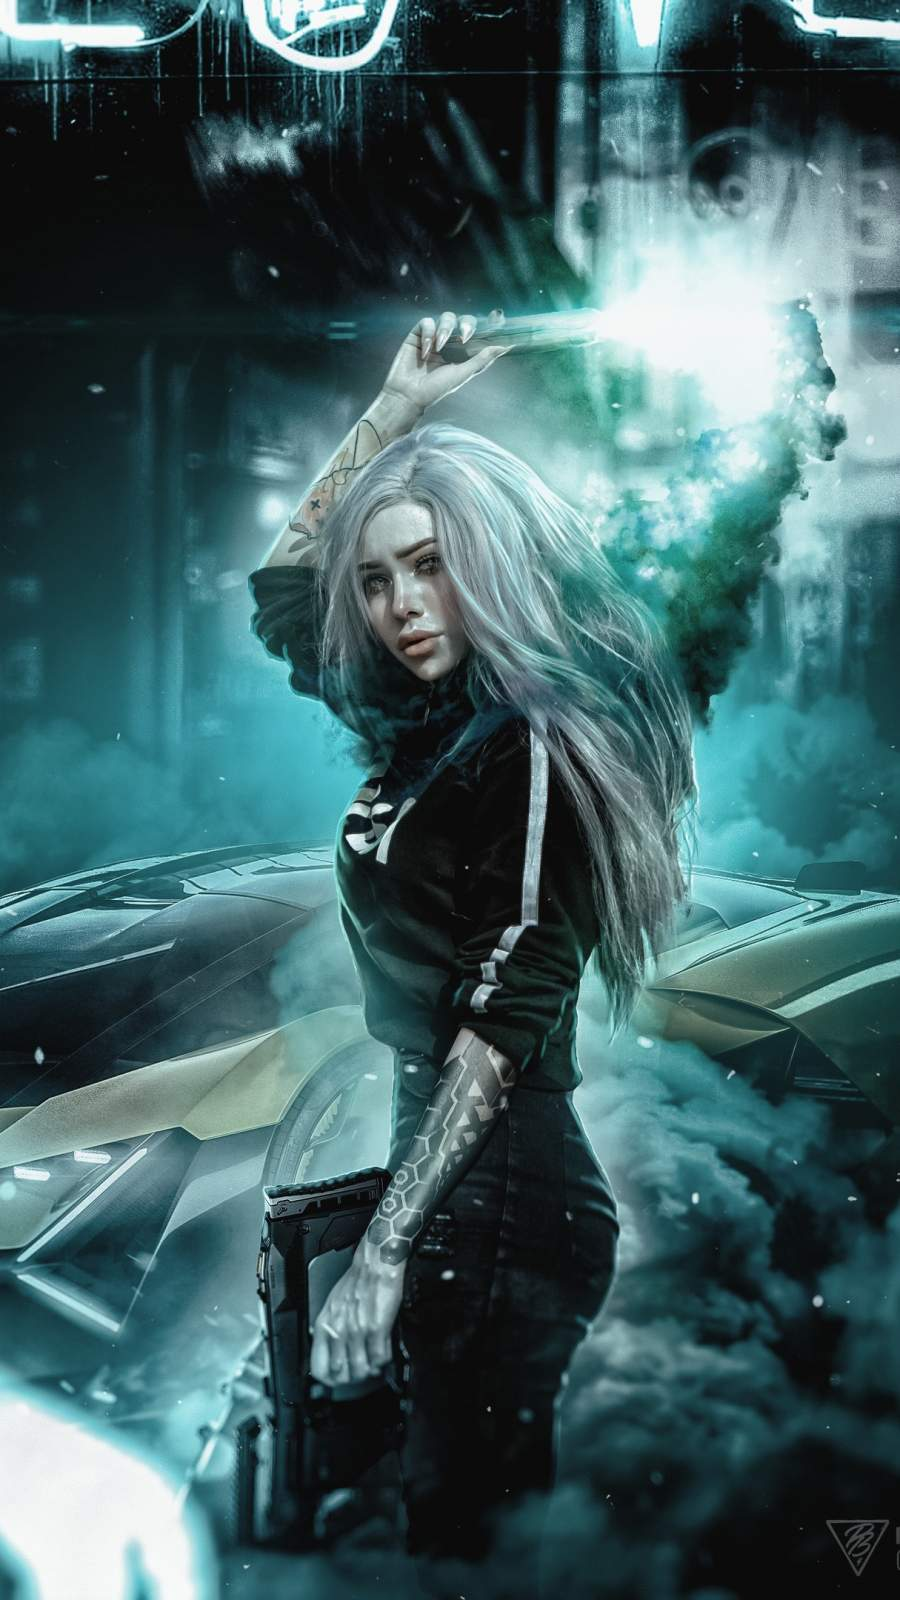 Street Racing Girl Smoke iPhone Wallpaper